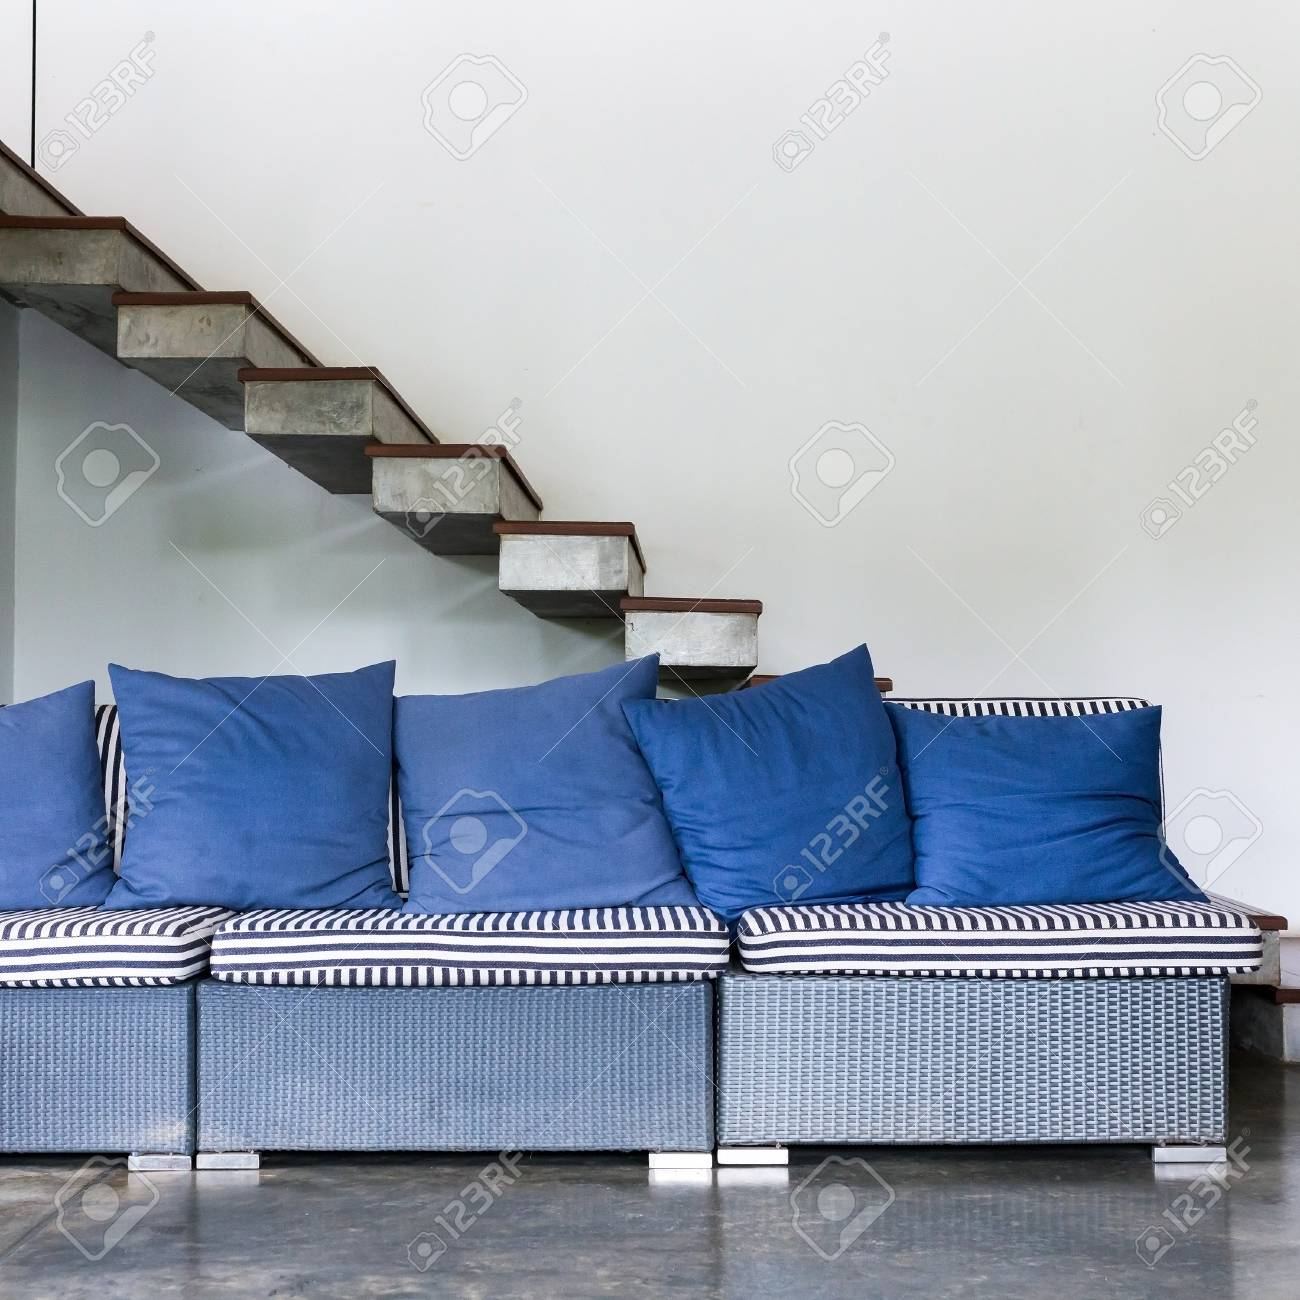 interior living room modern style with blue sofa furniture and rh 123rf com ashley furniture blue sofa city furniture blue sofa